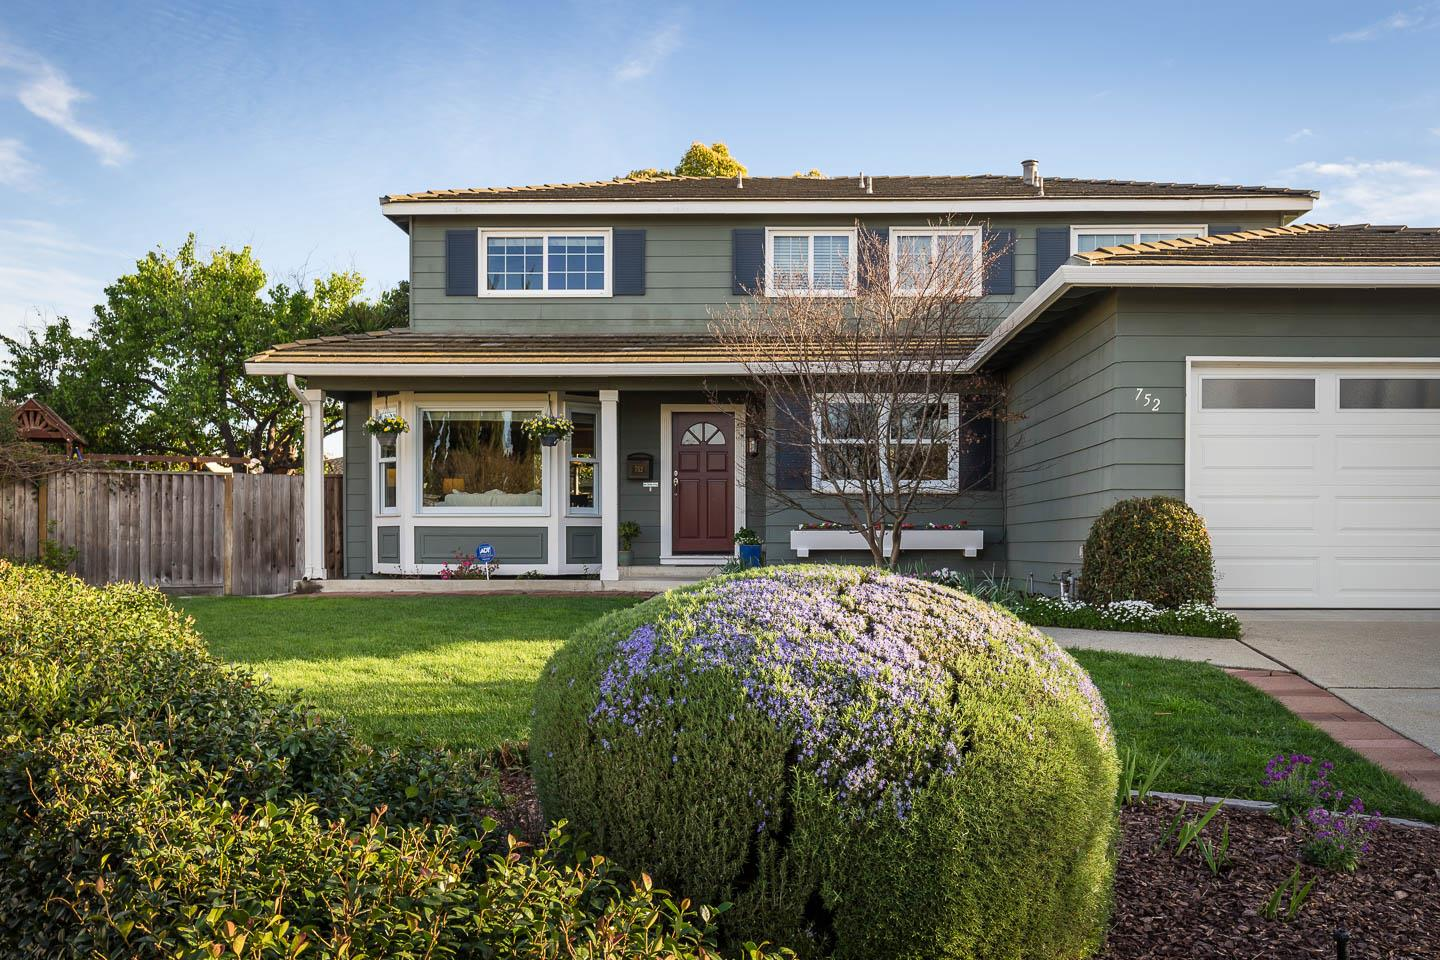 Detail Gallery Image 1 of 1 For 752 Silver Pine Ct, Sunnyvale, CA, 94086 - 5 Beds | 2/1 Baths